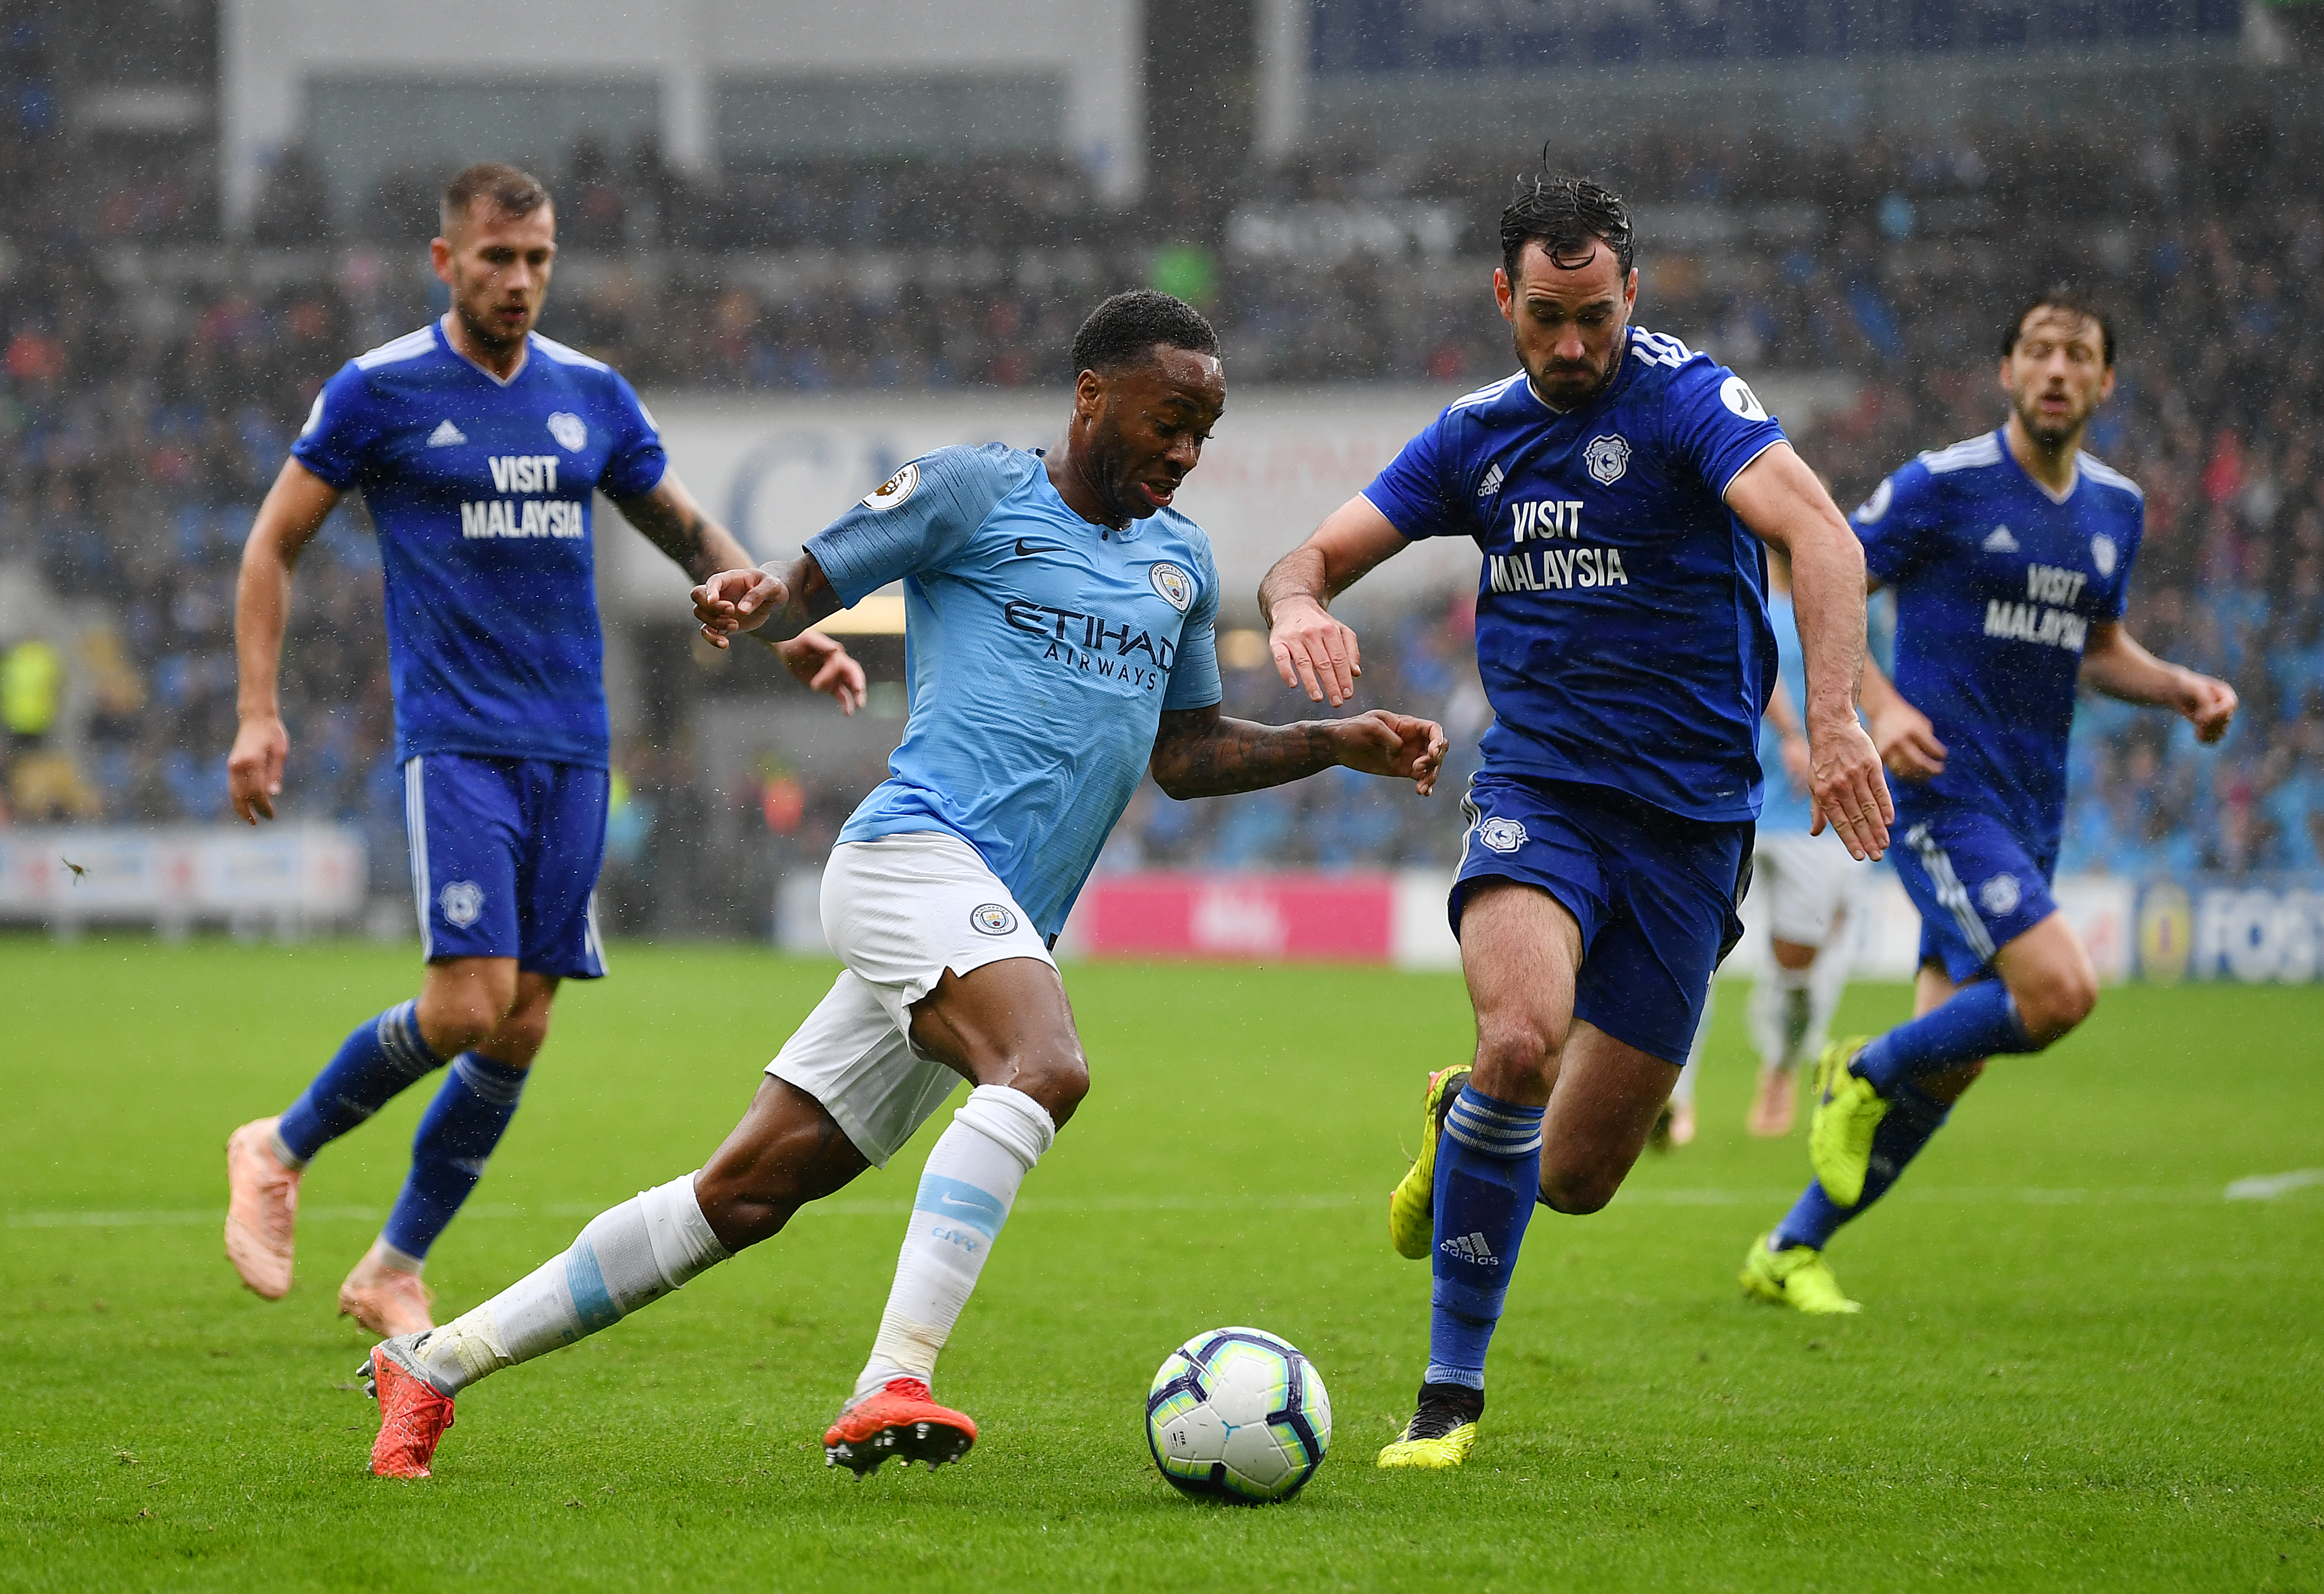 Manchester City vs Cardiff City, Premier League Matchday 32: Team News, Preview and Prediction